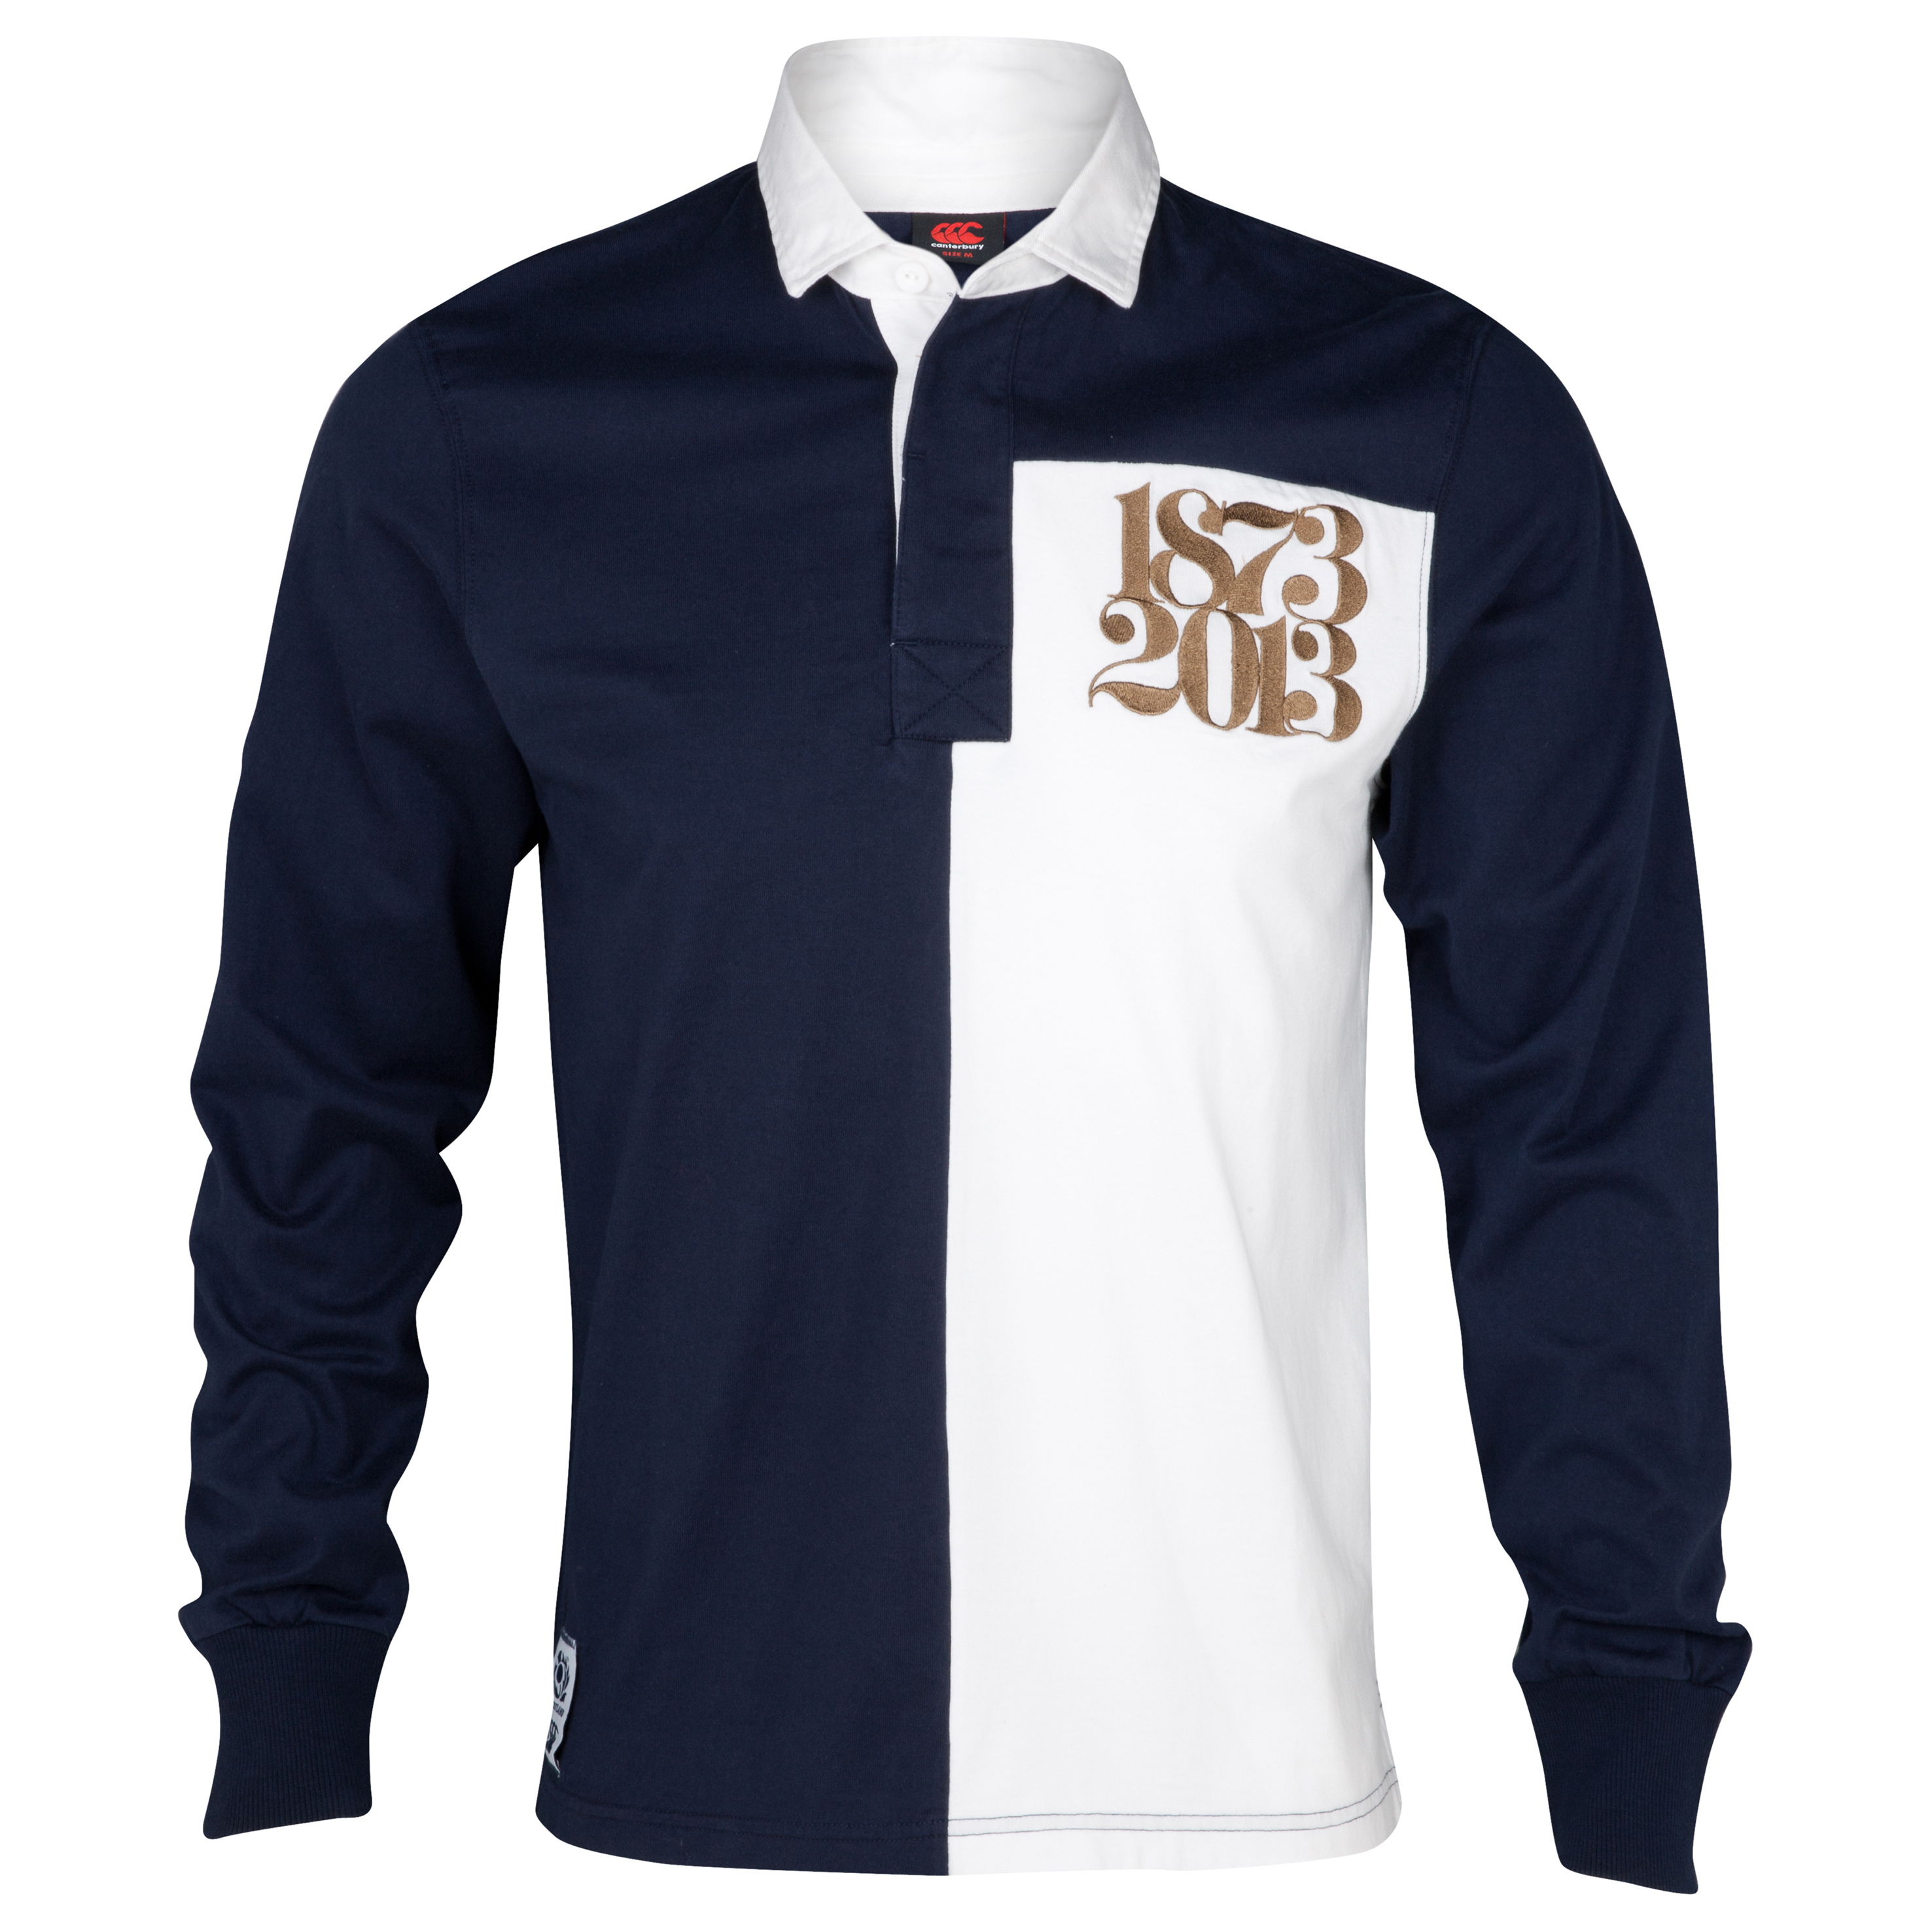 Scotland 1873-2013 Rugby Shirt - Long Sleeved